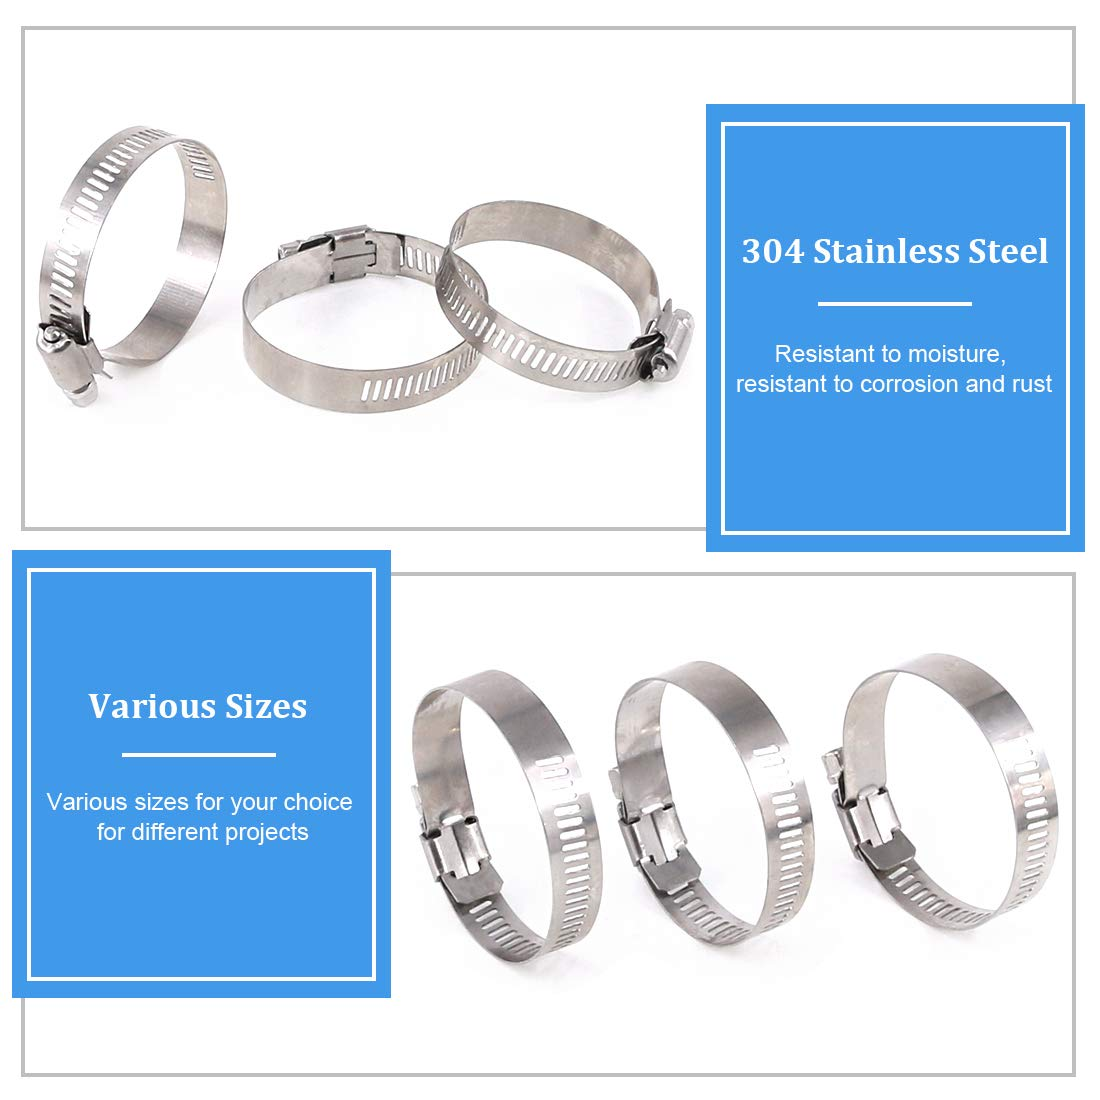 14-27MM Glarks 20Pcs 304 Stainless Steel Adjustable 14-27MM Range Worm Gear Hose Clamps Assortment Kit Automotive and Mechanical Application Plumbing Fuel Line Clamp for Water Pipe